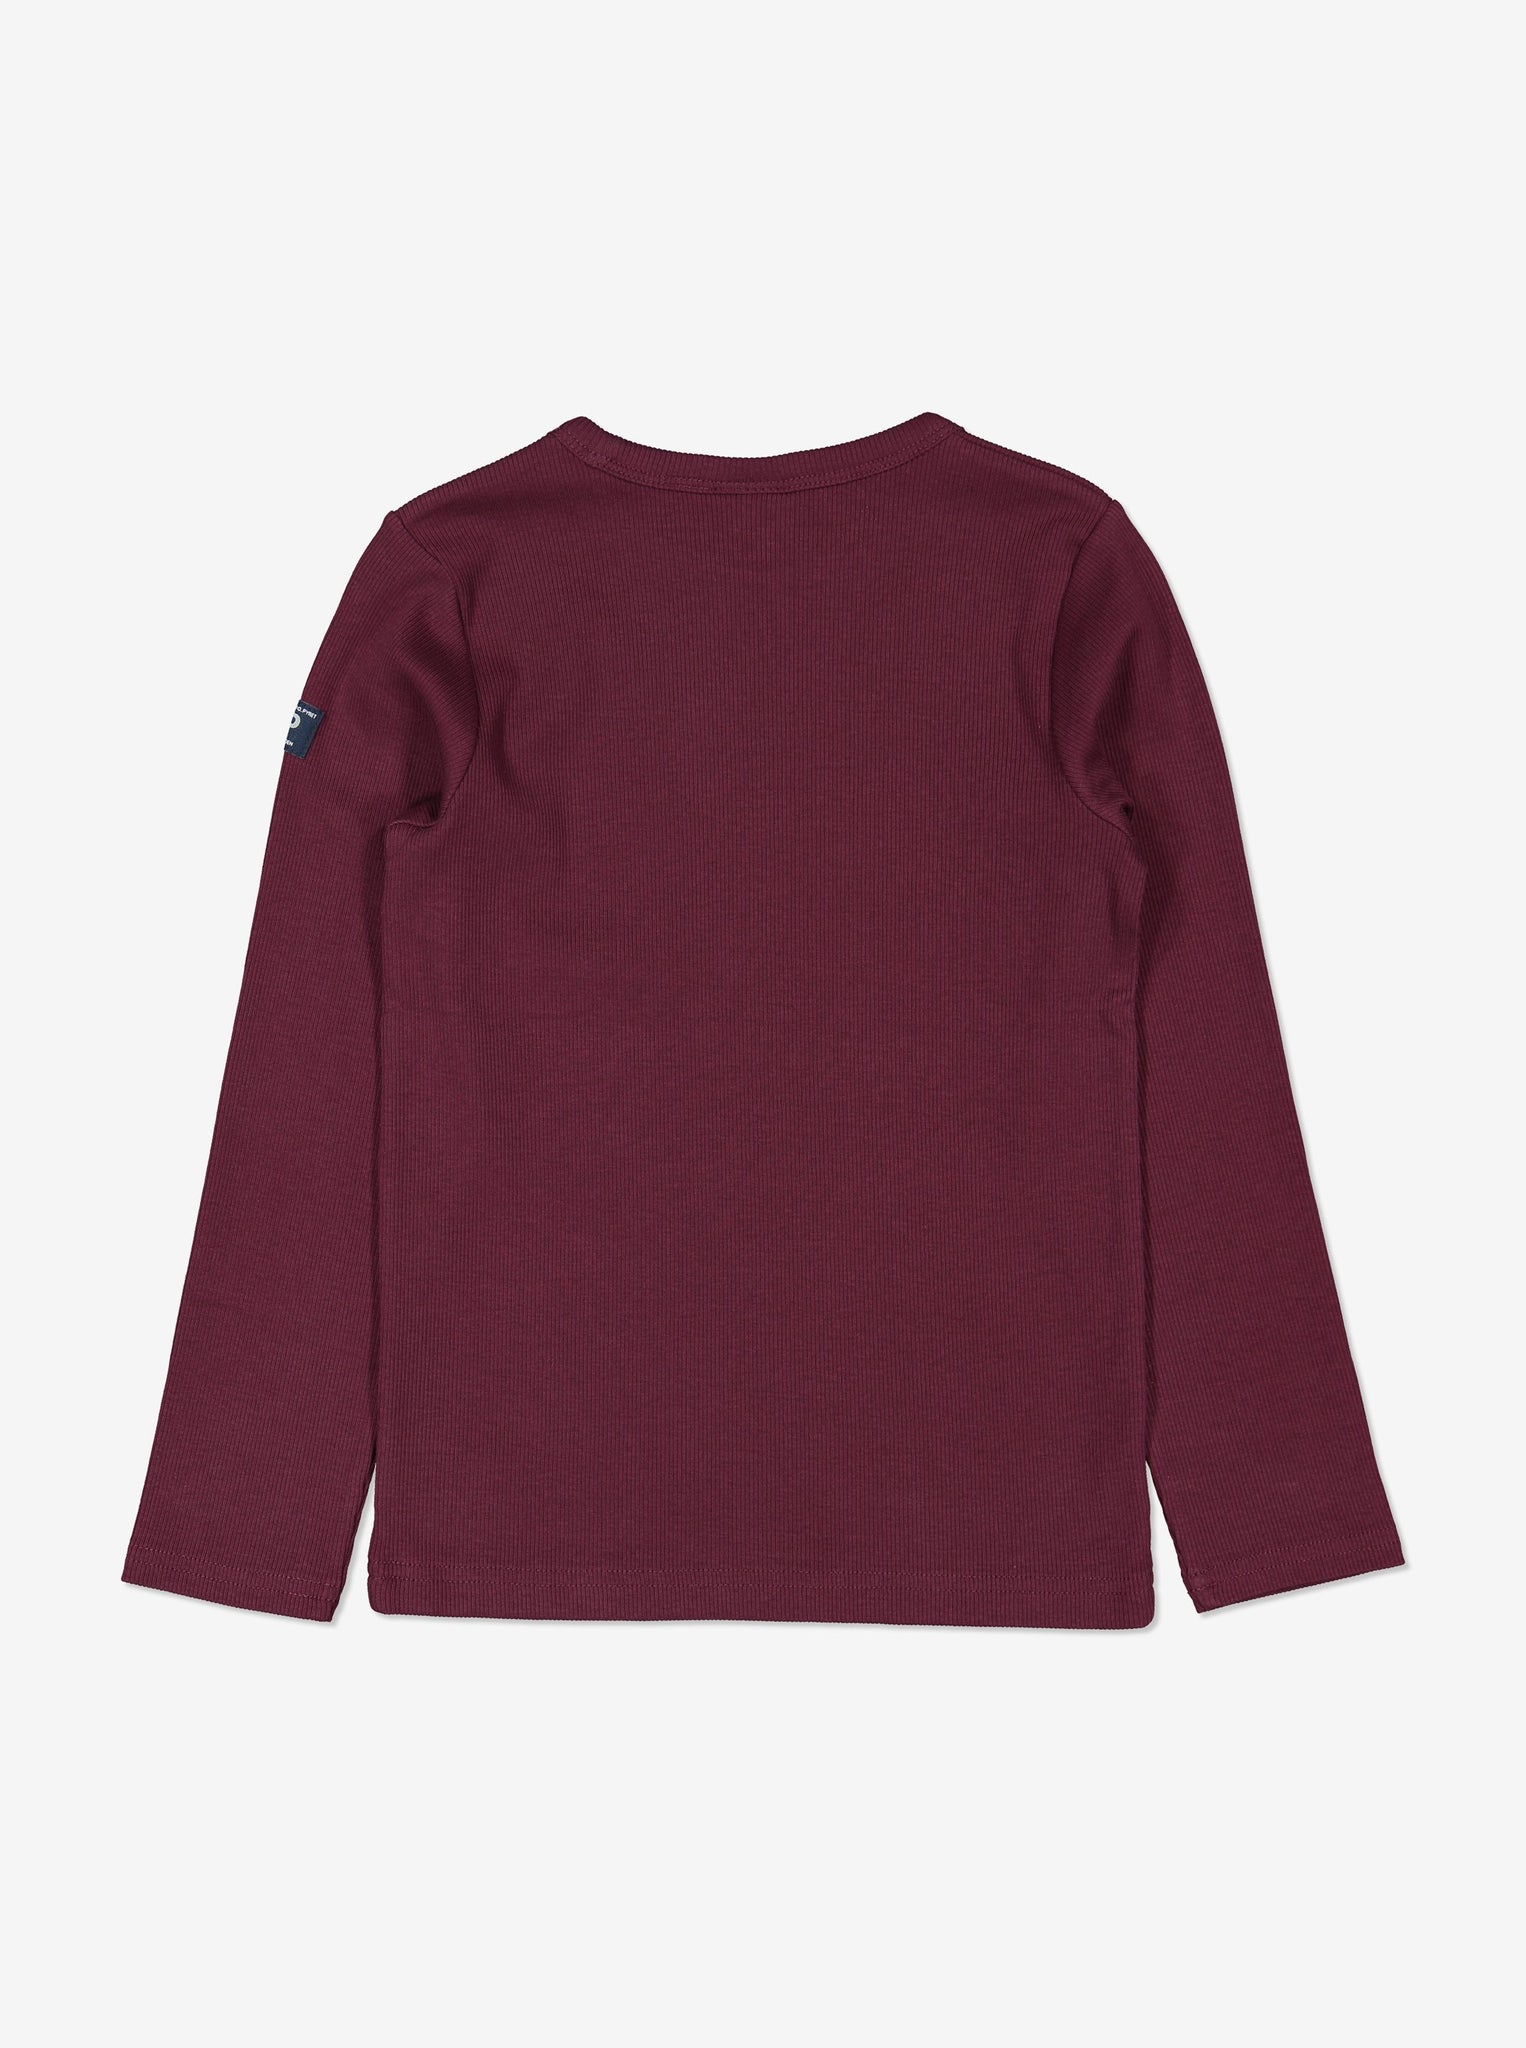 Back view of kids burgundy red top in soft organic cotton